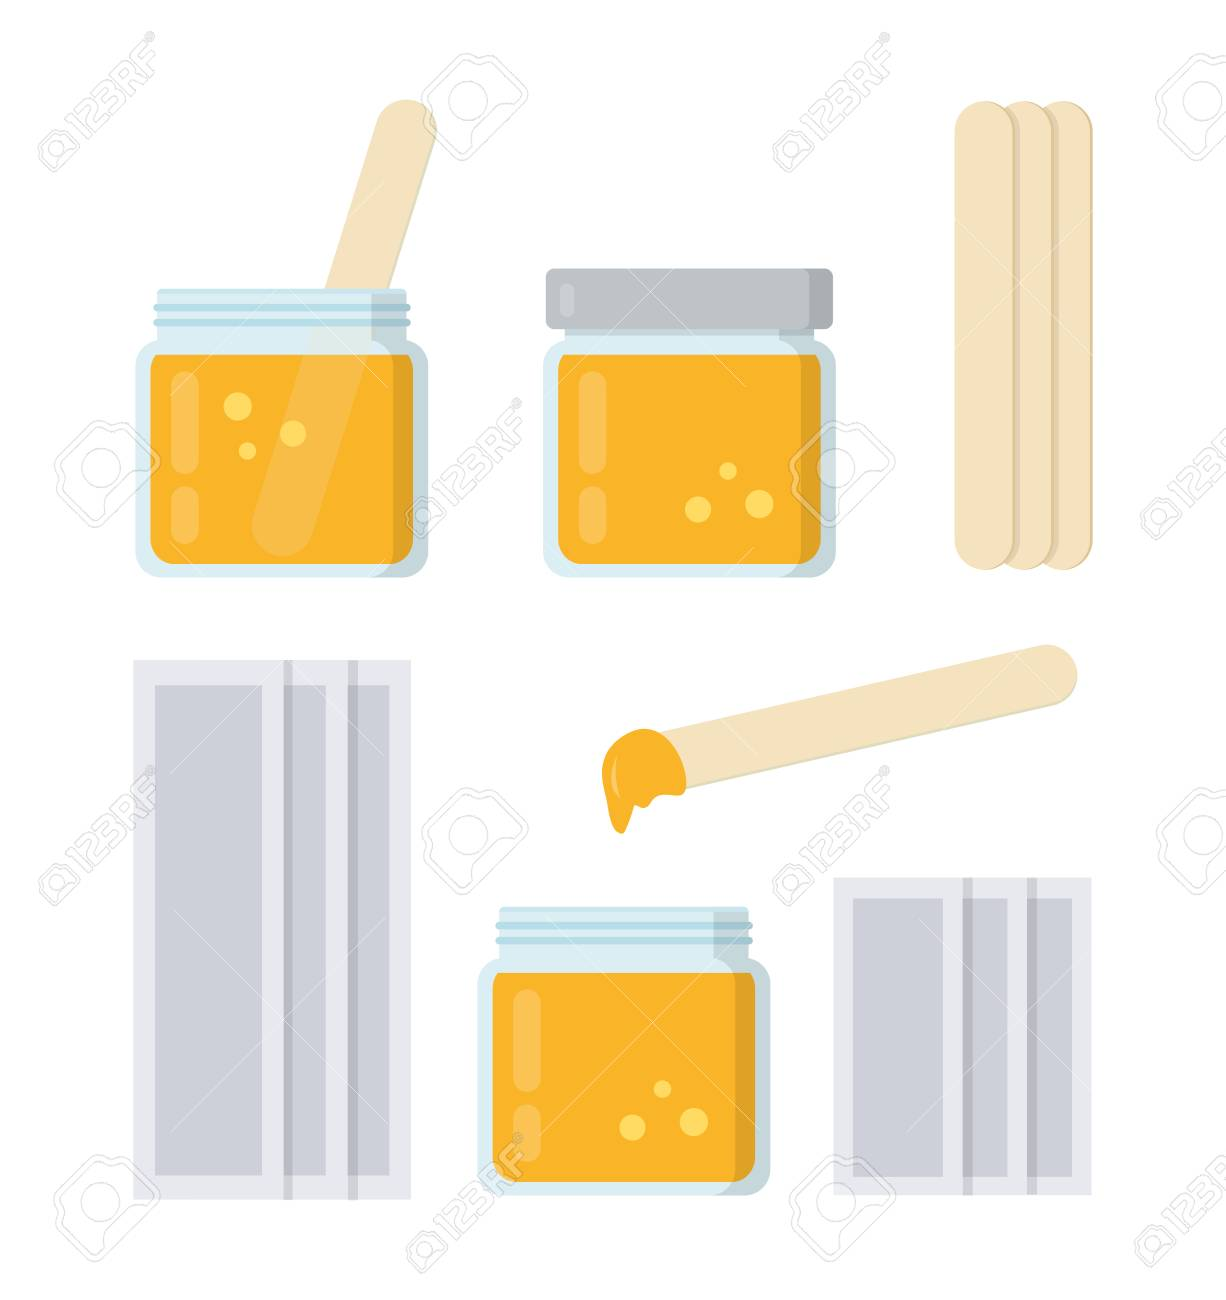 Set Tools For Waxing Hair Removal Glass Jars Of Wax Sticks Royalty Free Cliparts Vectors And Stock Illustration Image 96829041